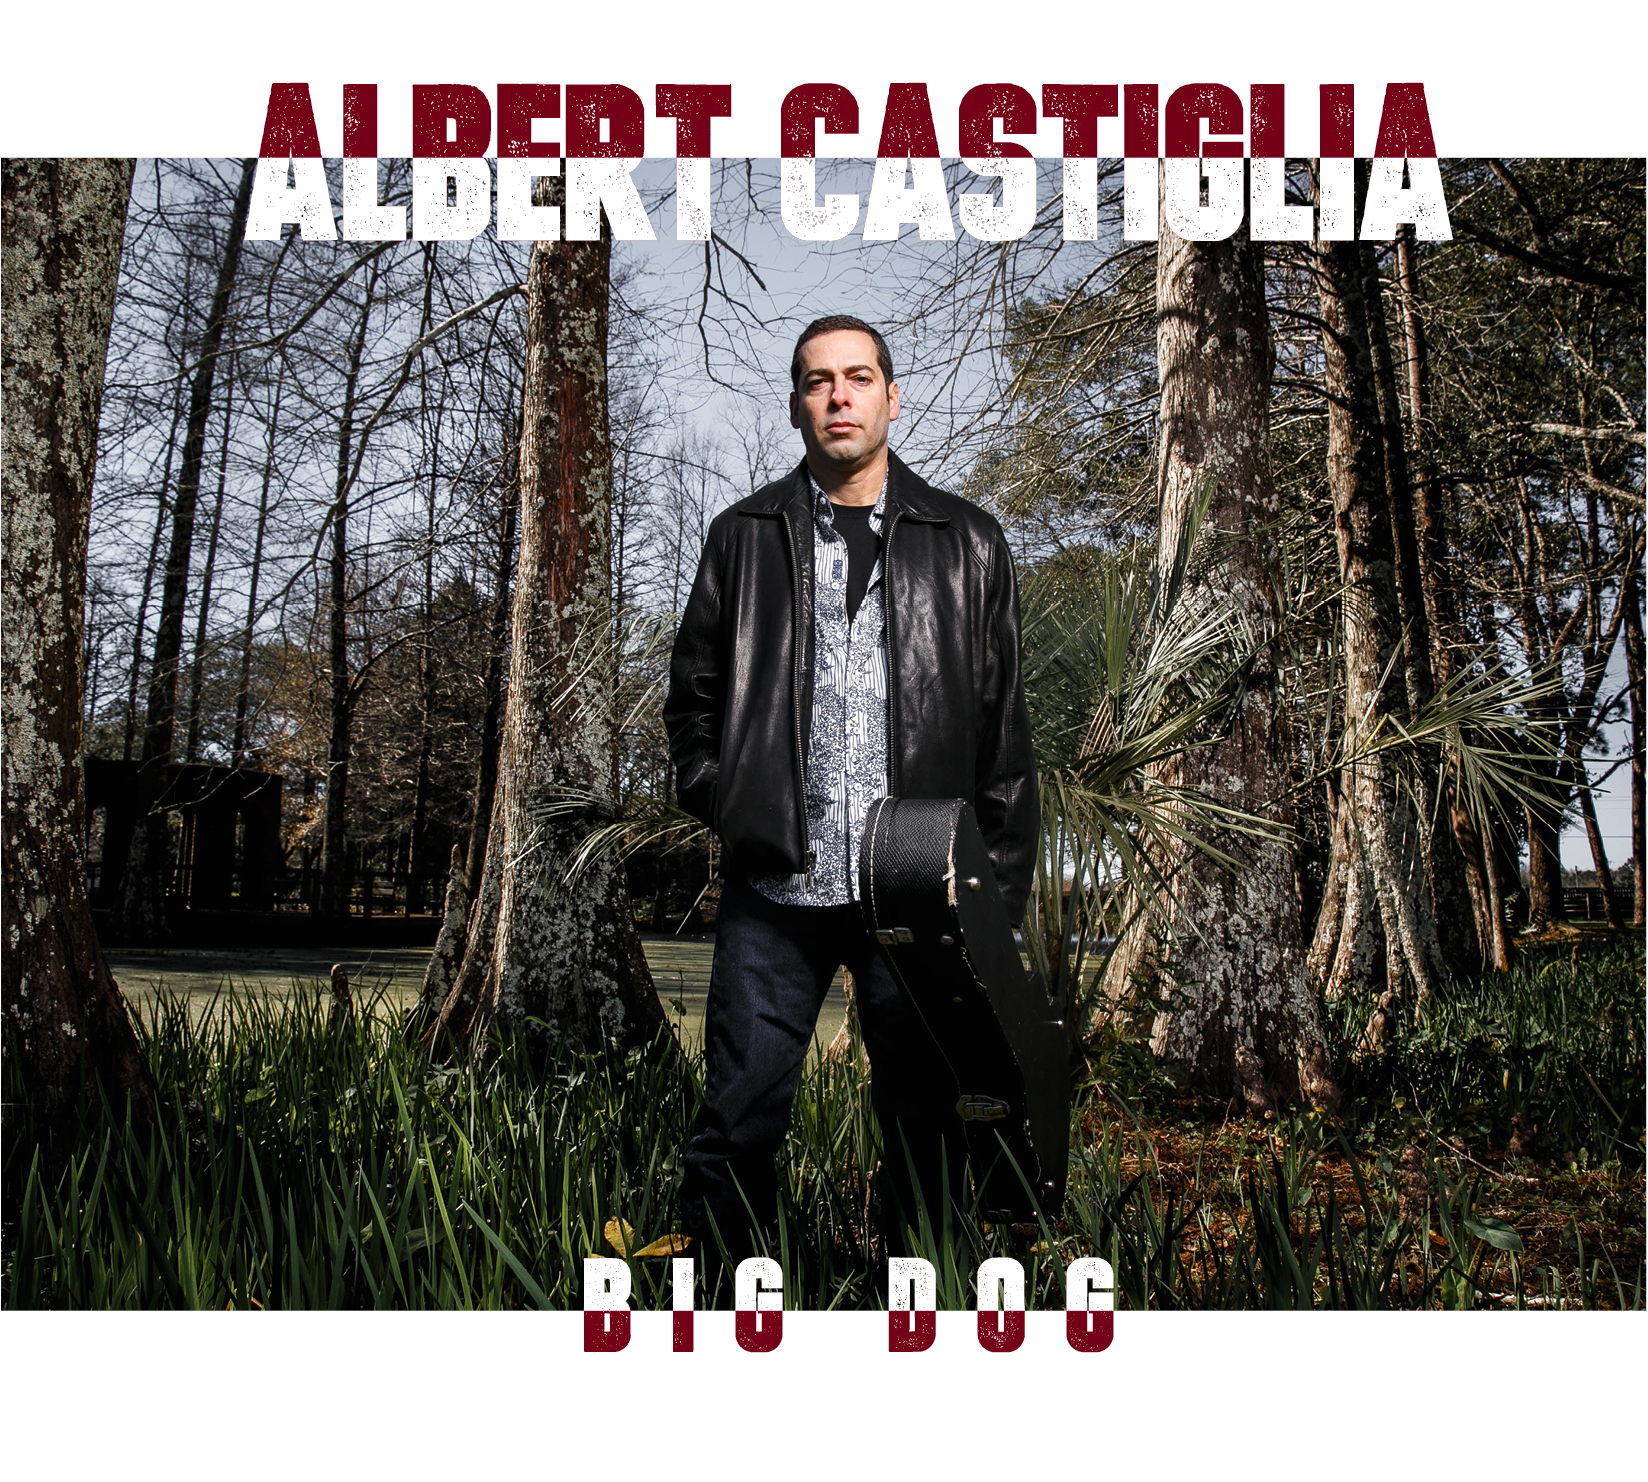 Albert Castiglia Keeps His Fans On A Short Leash